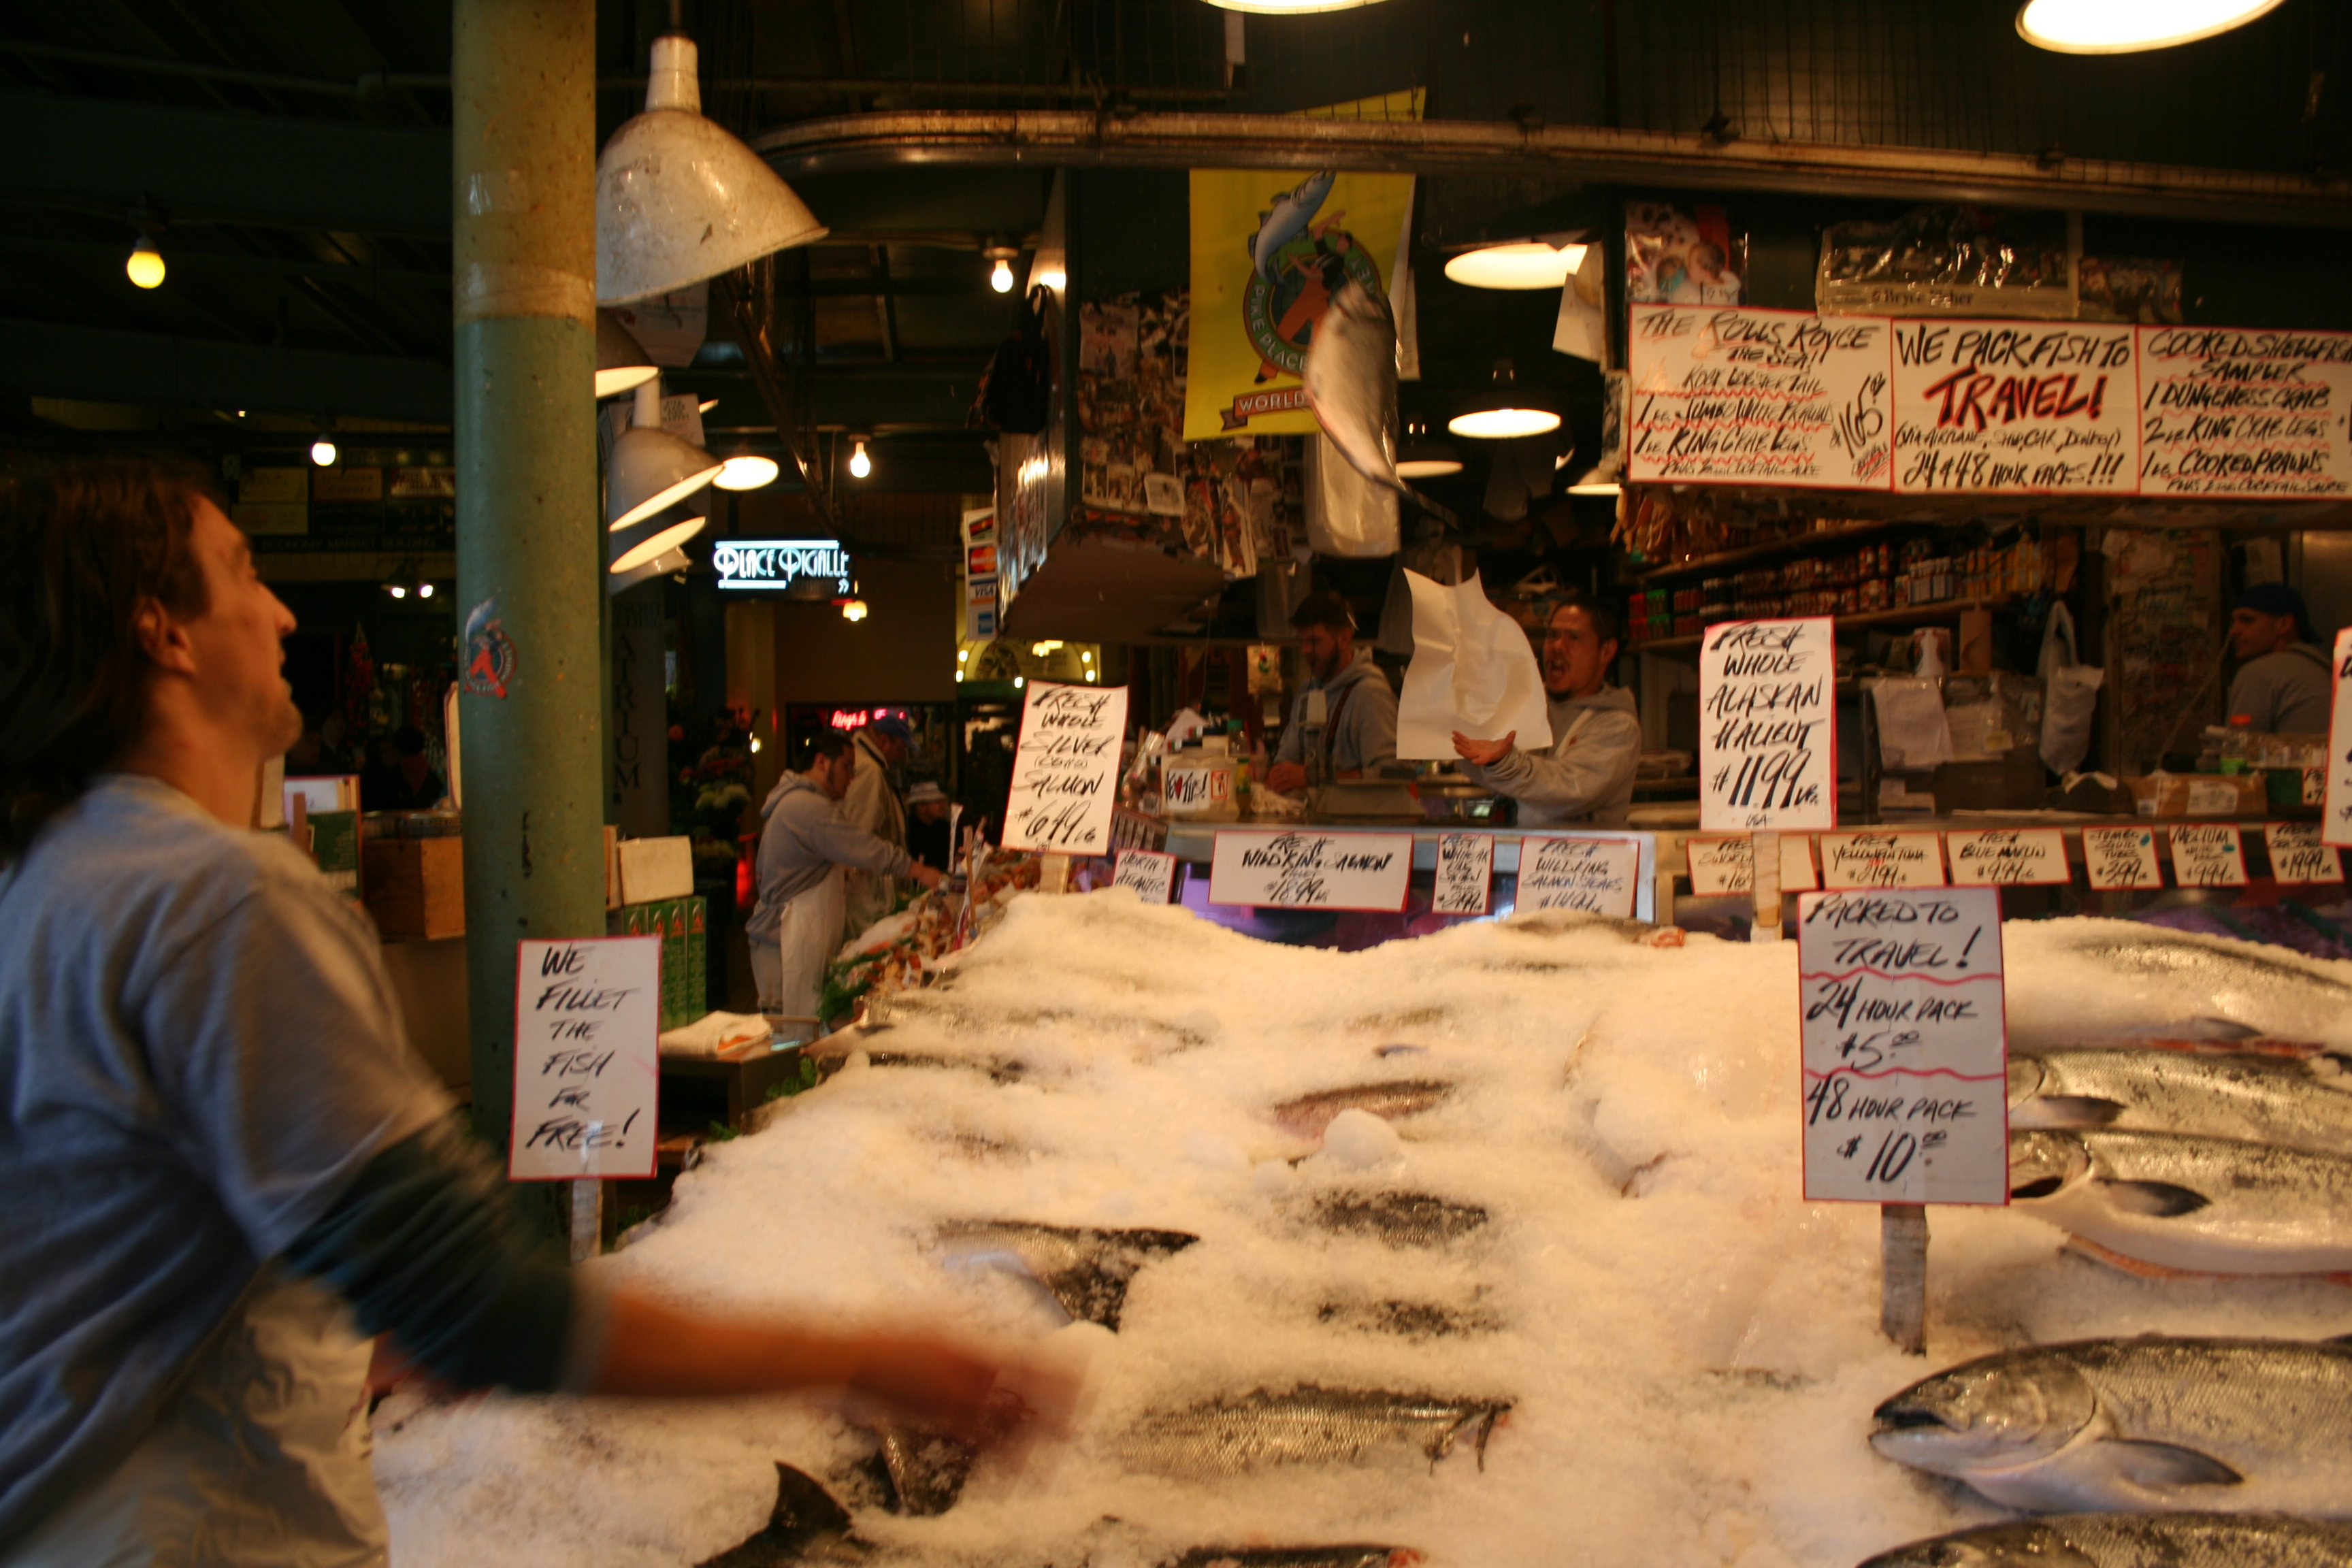 Pike place fish market wiki everipedia for Pike place fish market video